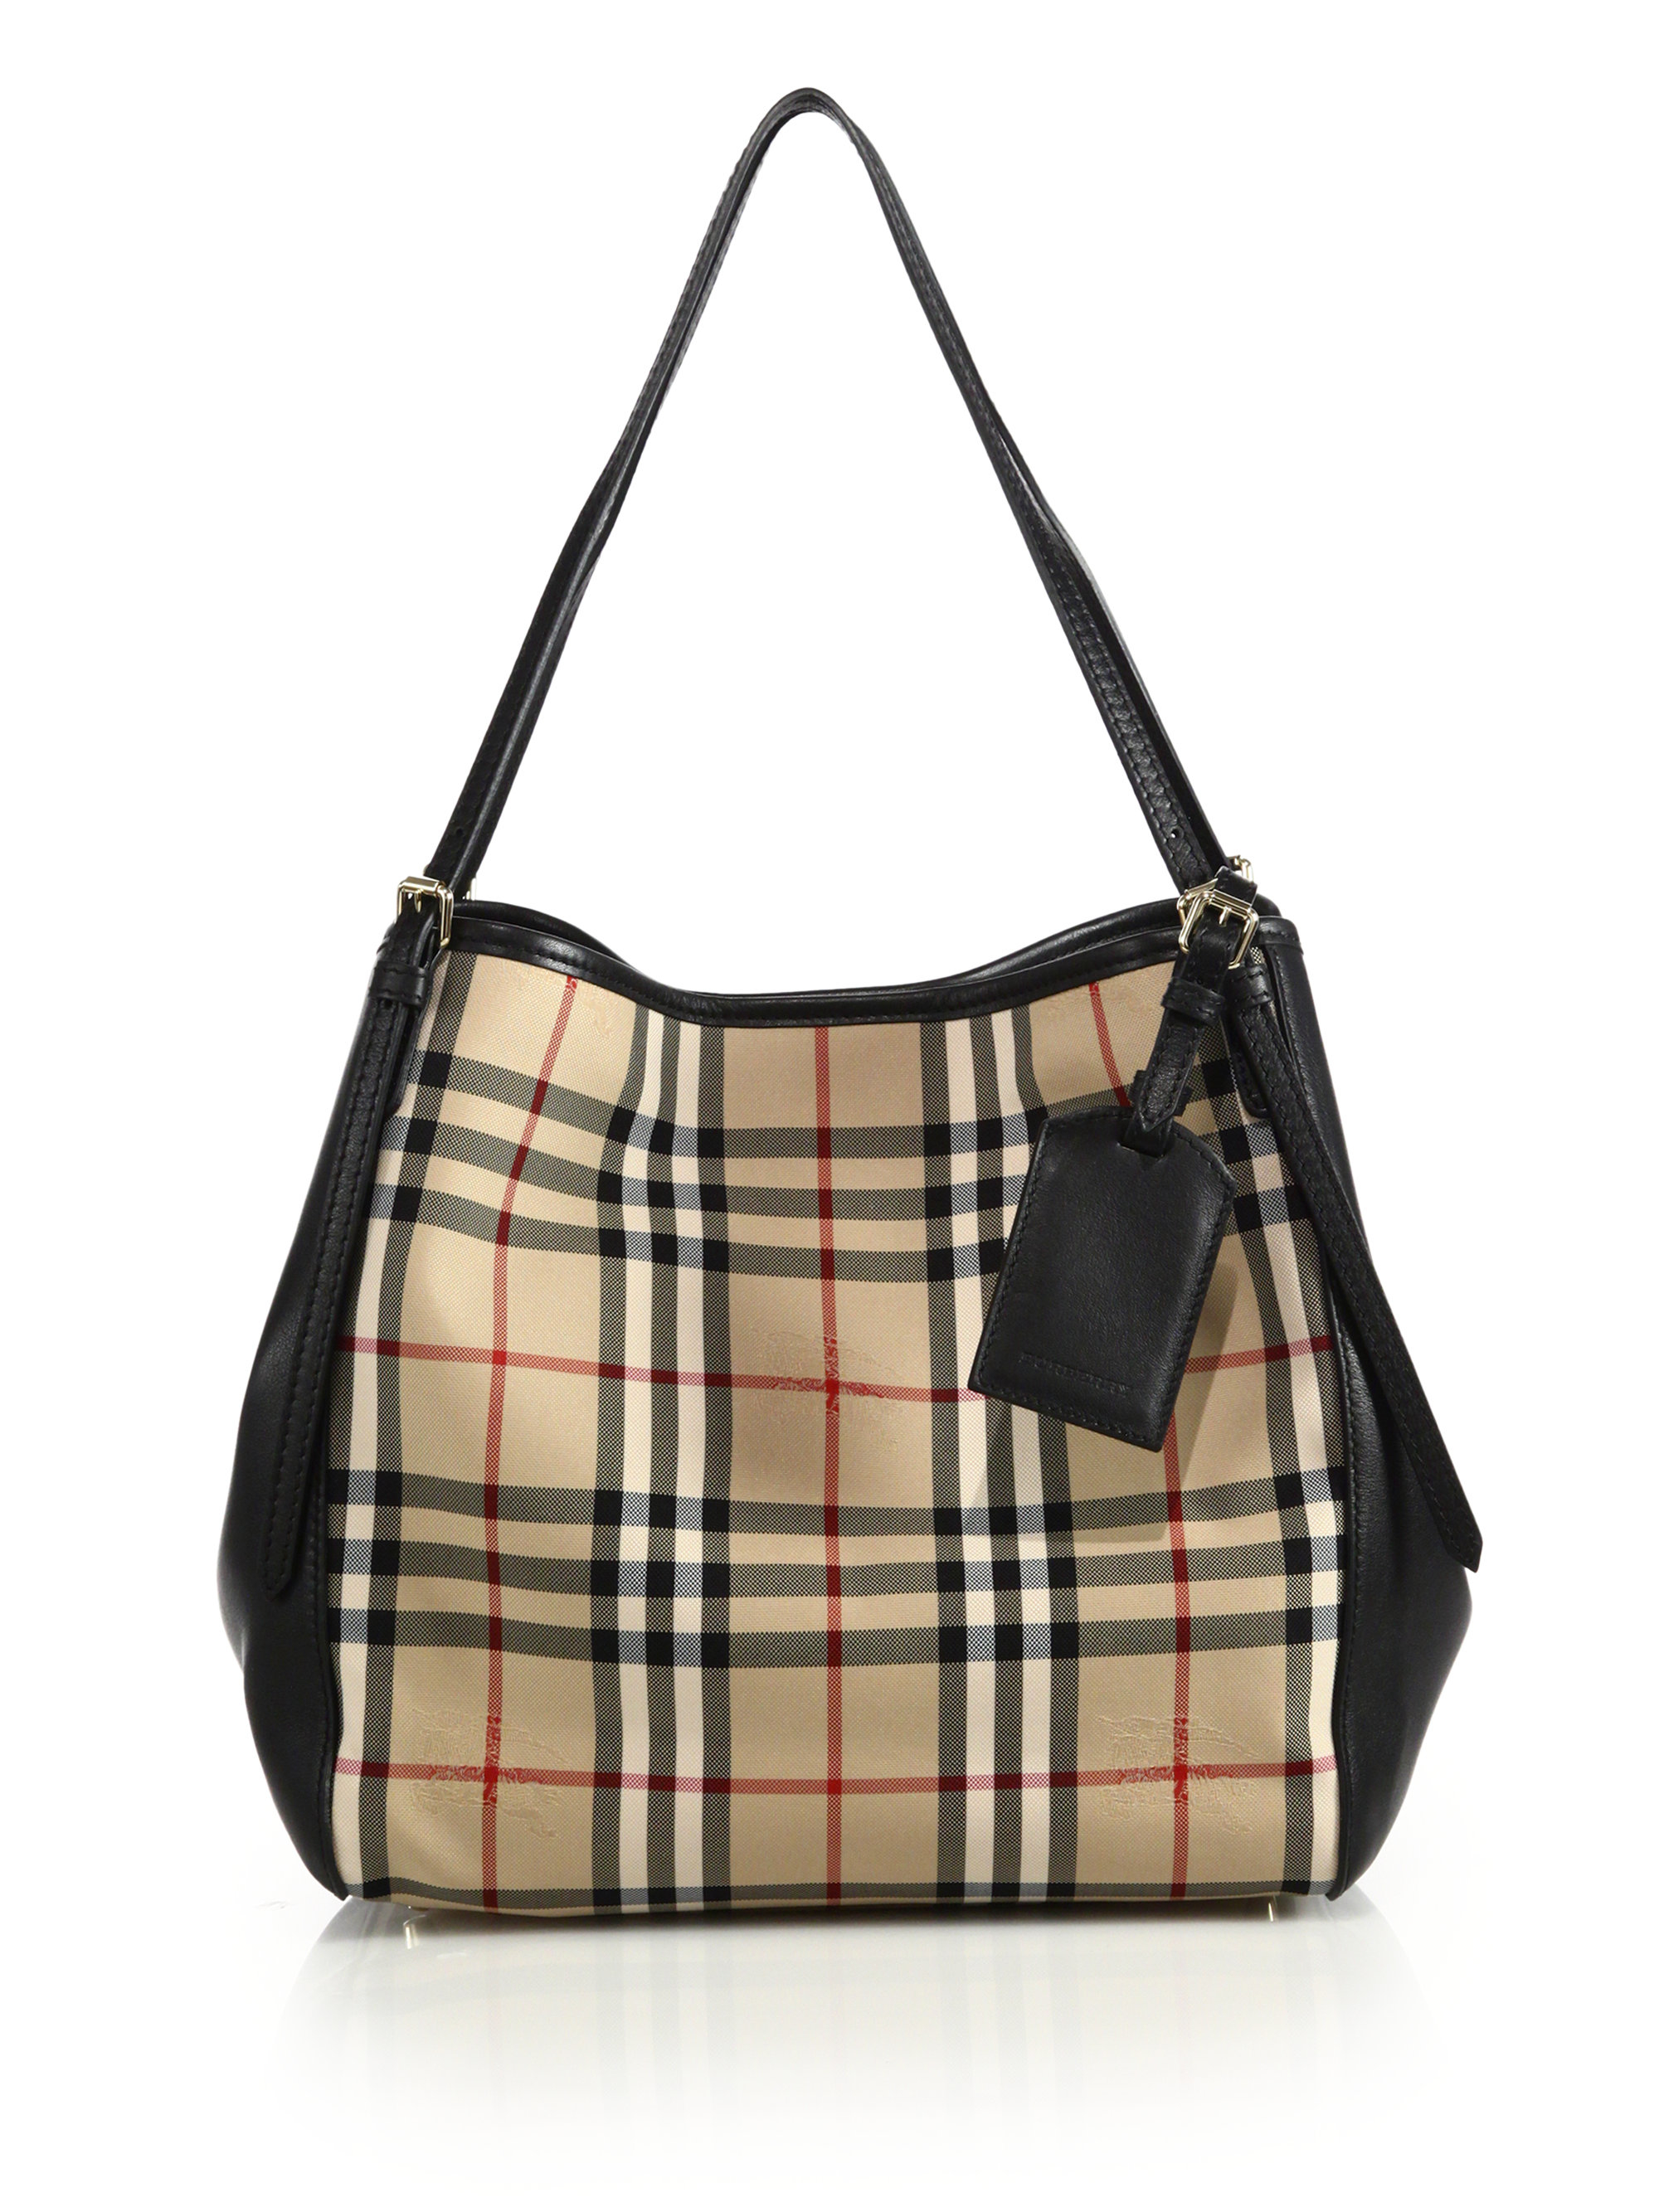 5c2989066c0c Lyst - Burberry Canter Small Horseferry Check Textile   Leather Tote ...